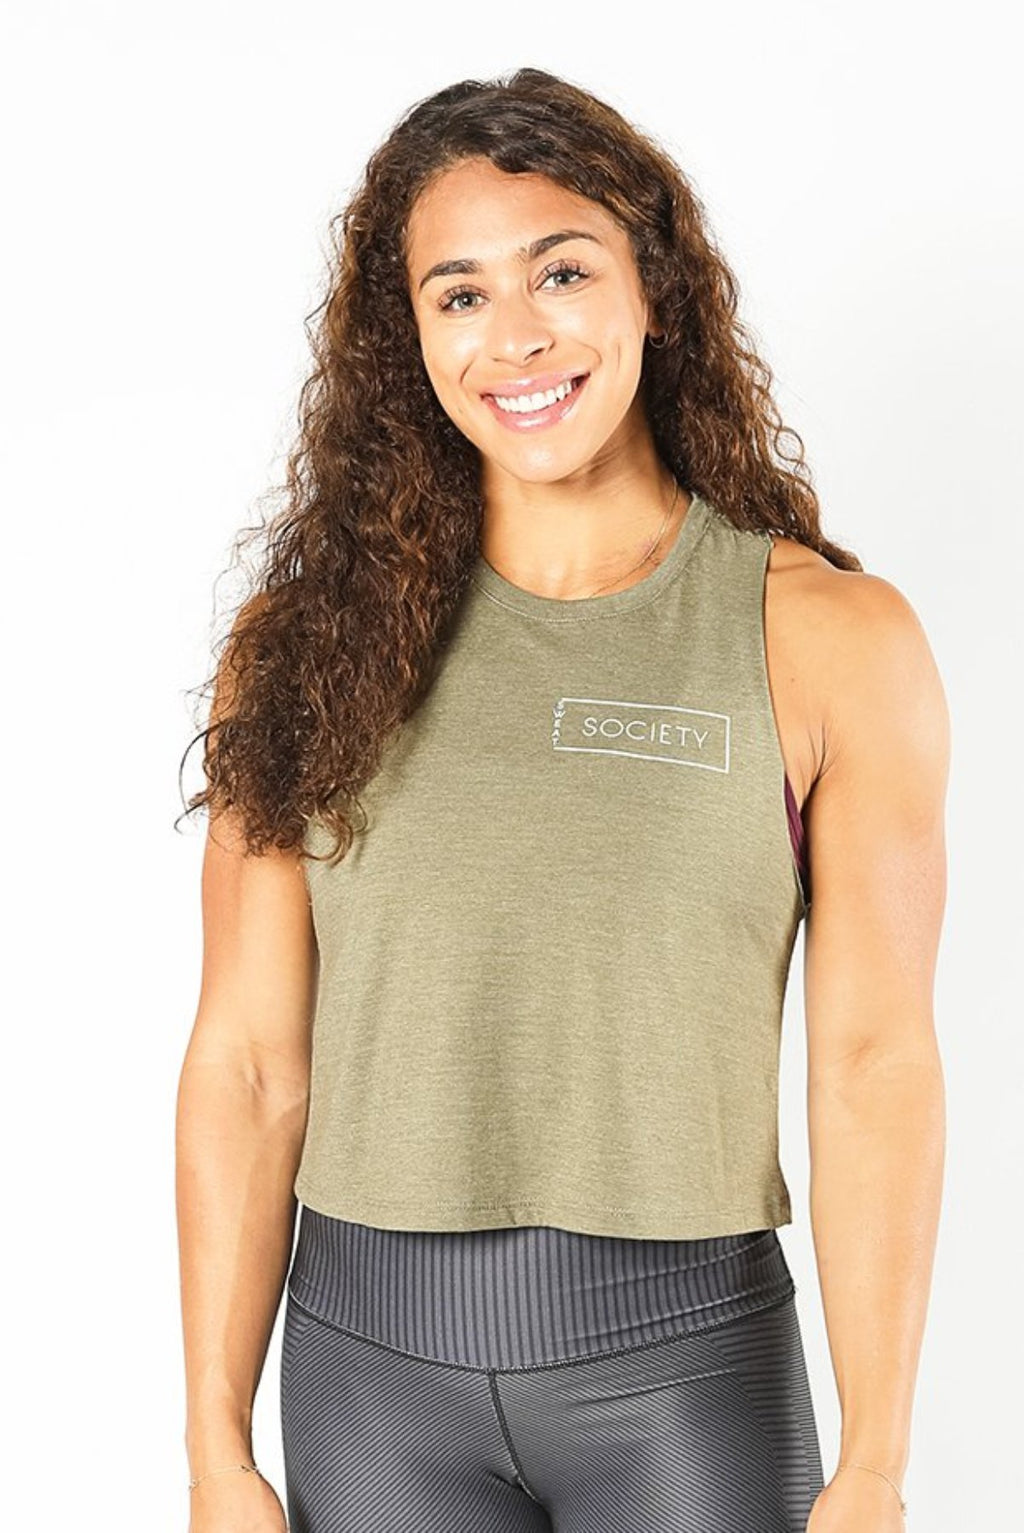 Sweat Society Liberty Tank Ethical Activewear Canada USA